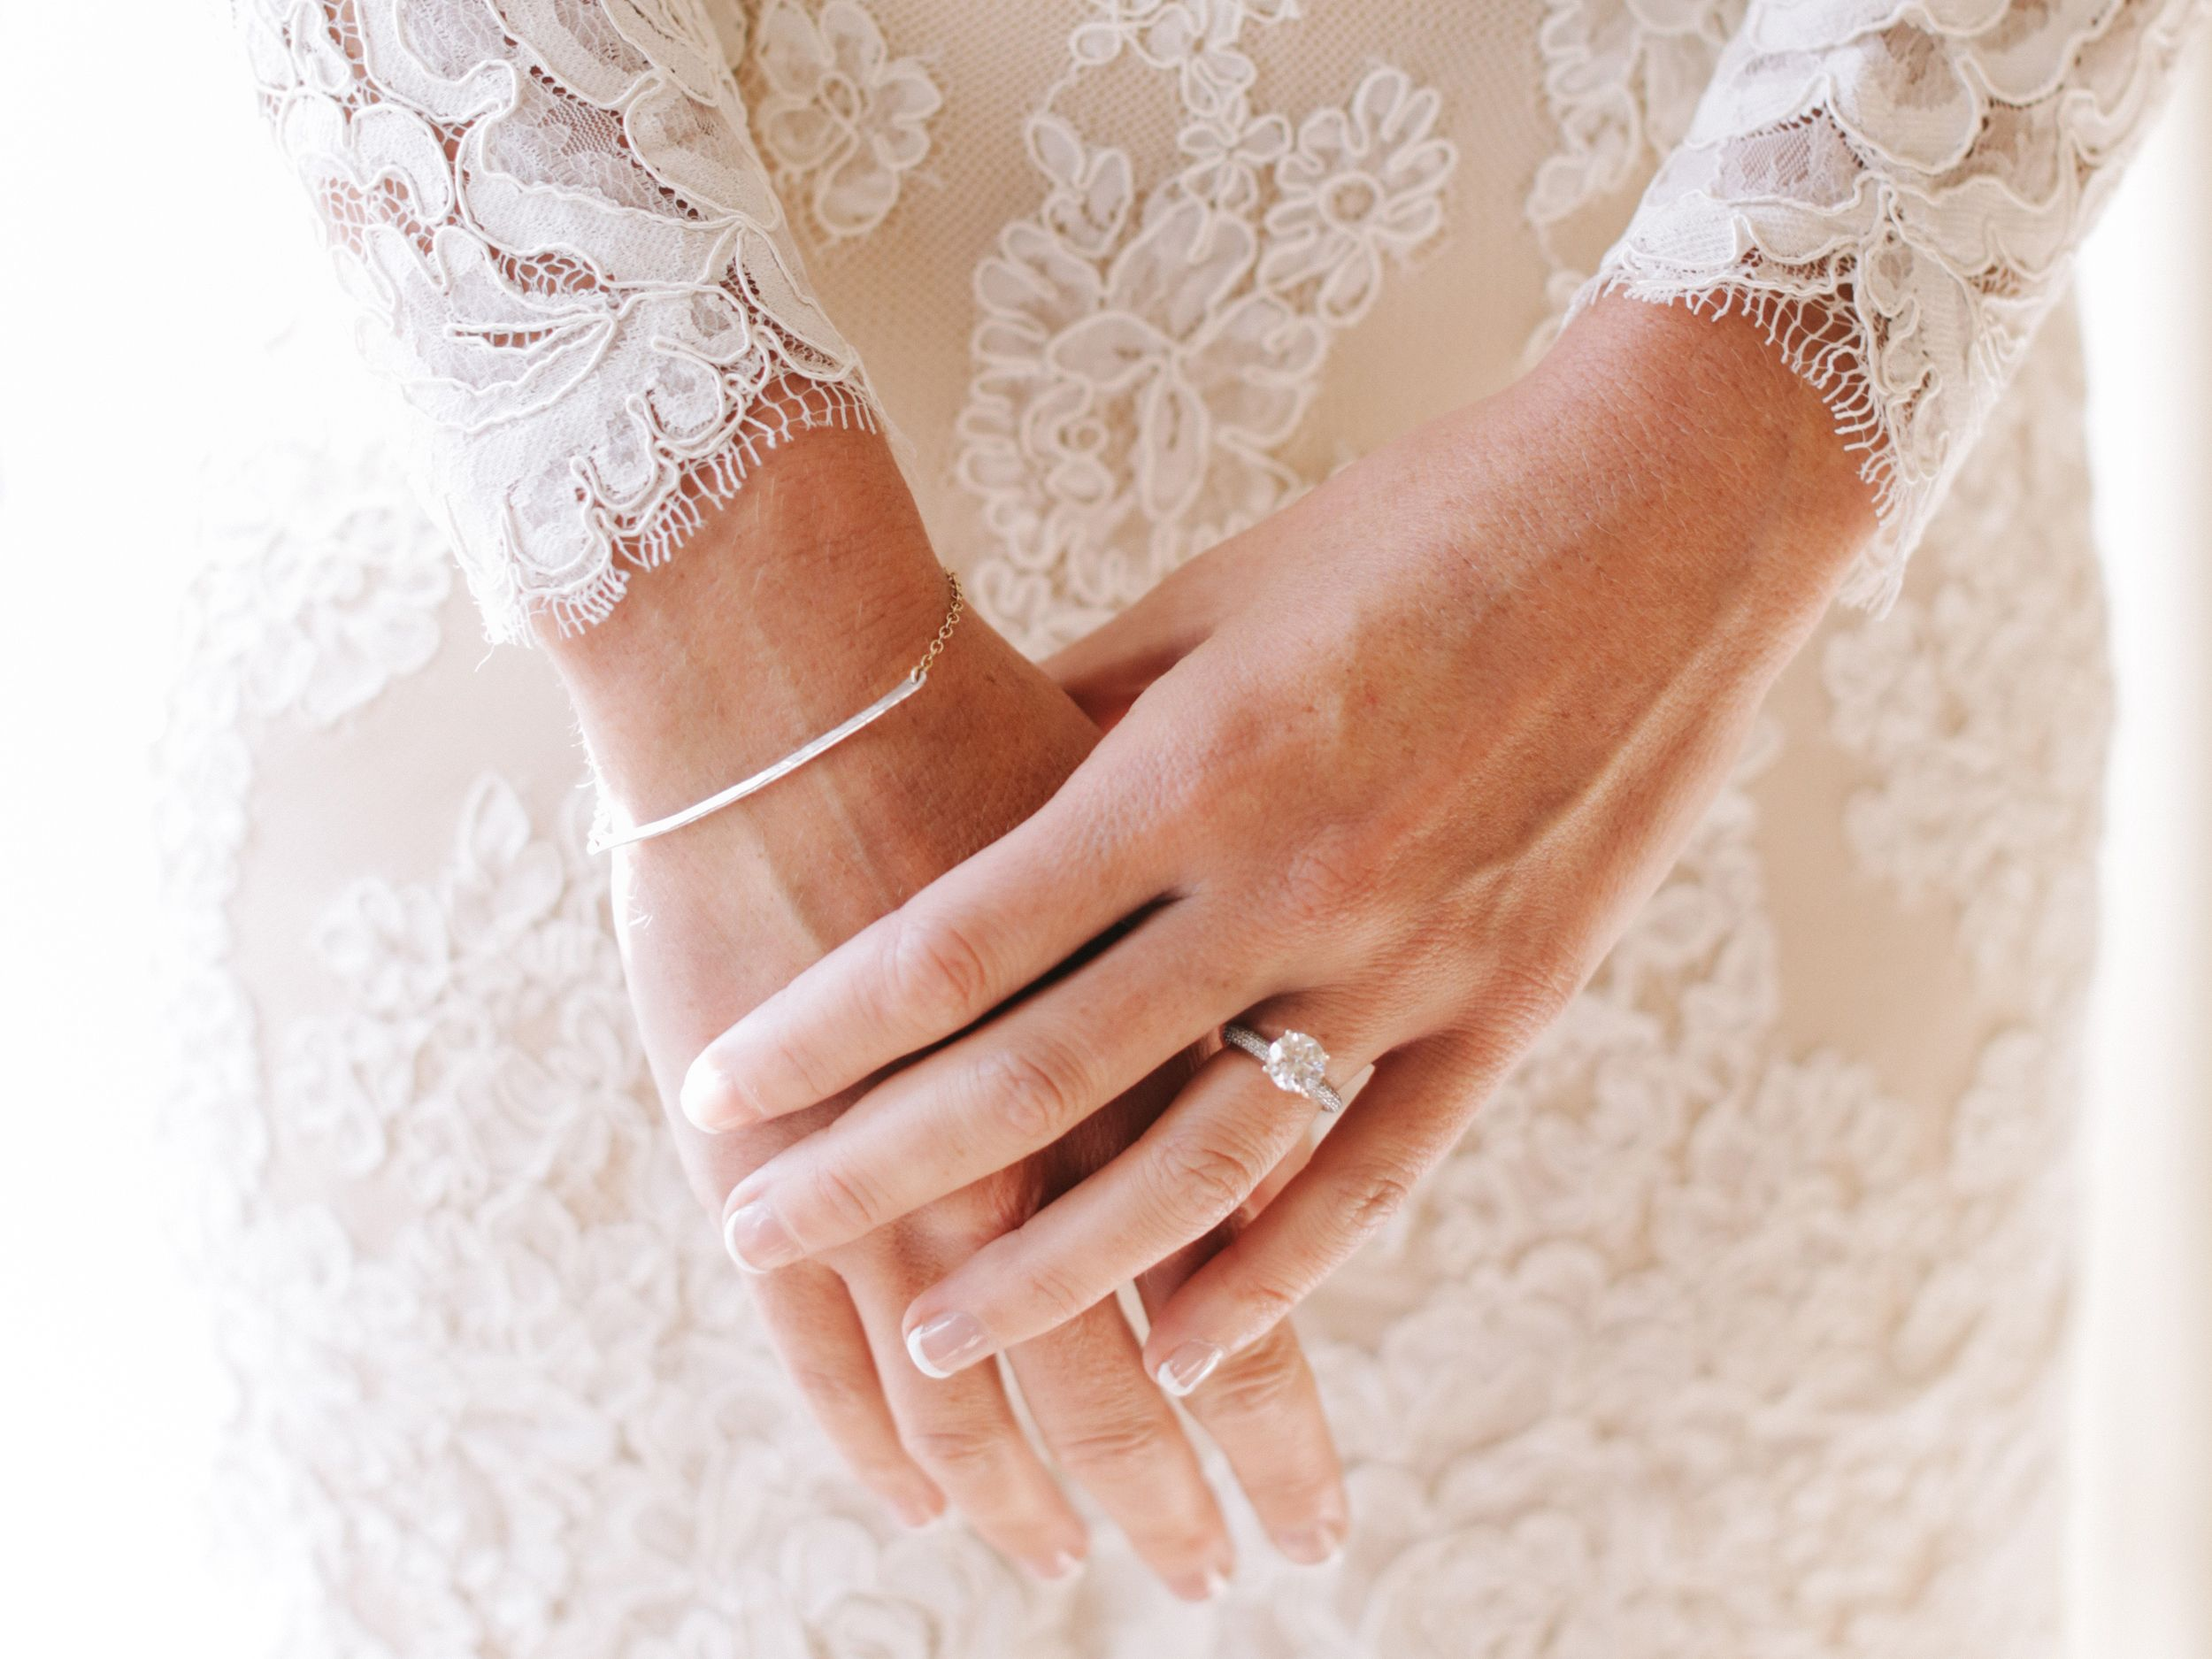 What Hand Does Your Wedding And Engagement Ring Go On Buying An Engagement Ring Beautiful Diamond Engagement Ring Custom Engagement Ring